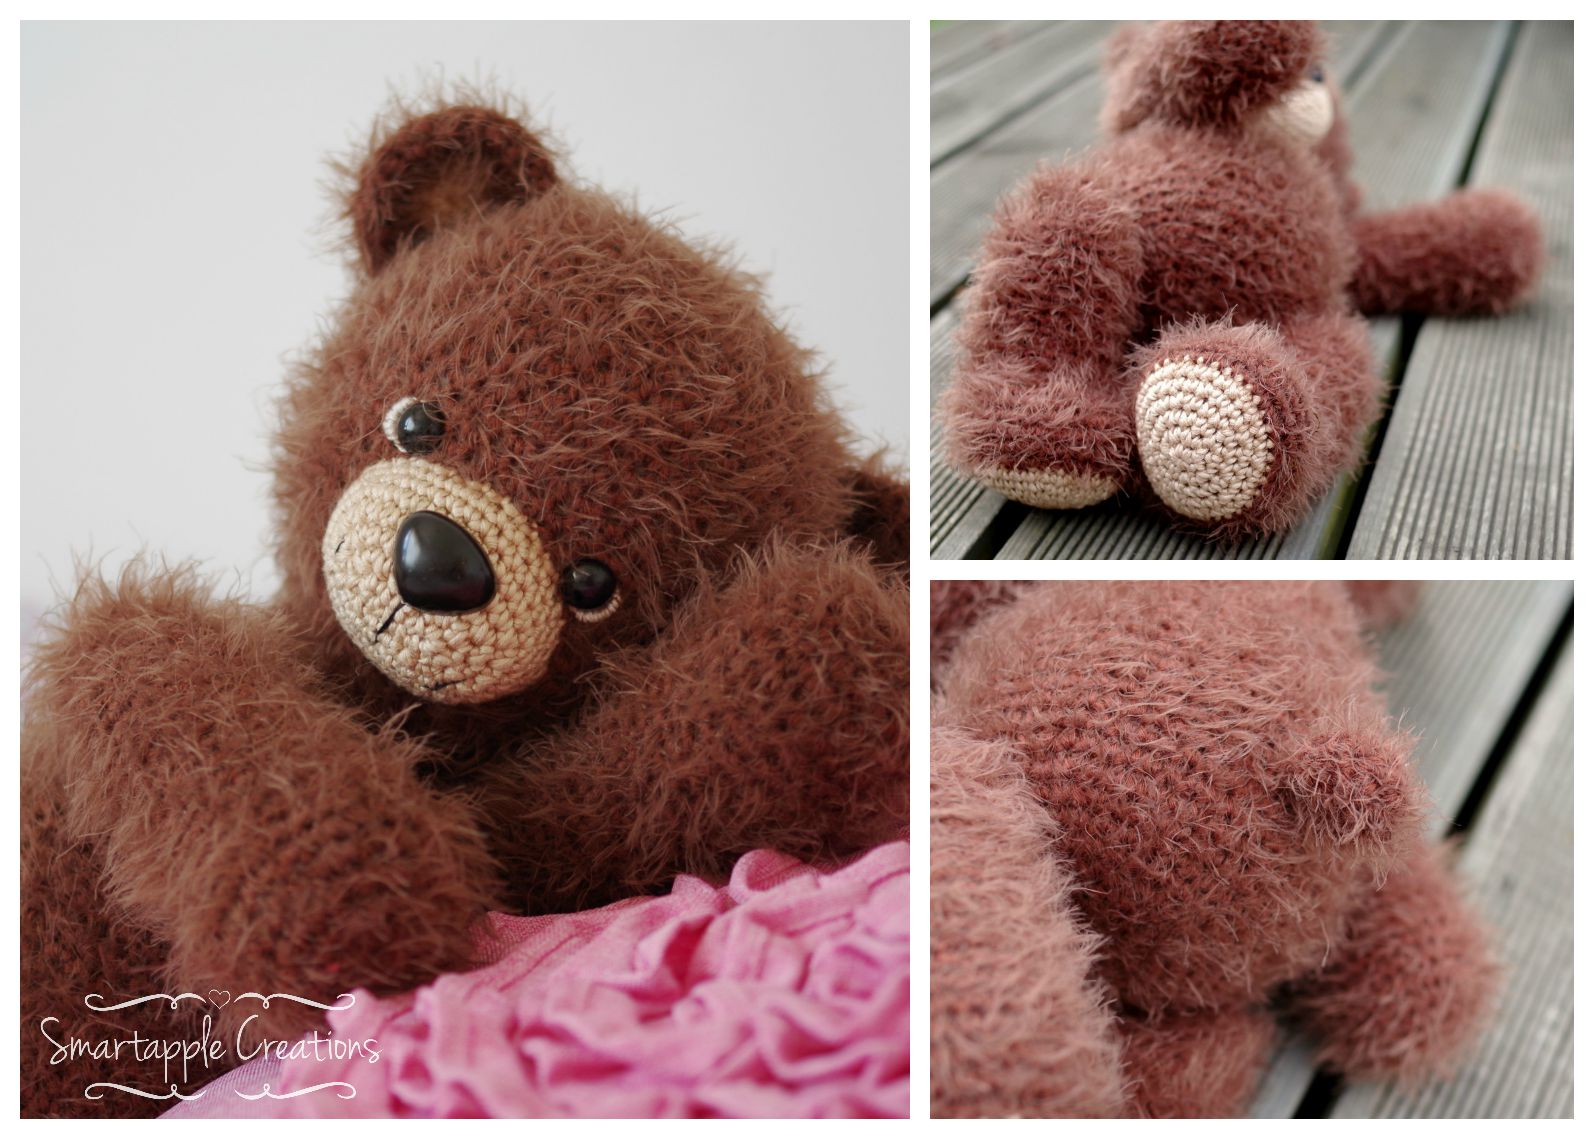 Smartapple Creations - amigurumi and crochet: Cuddly teddy ...